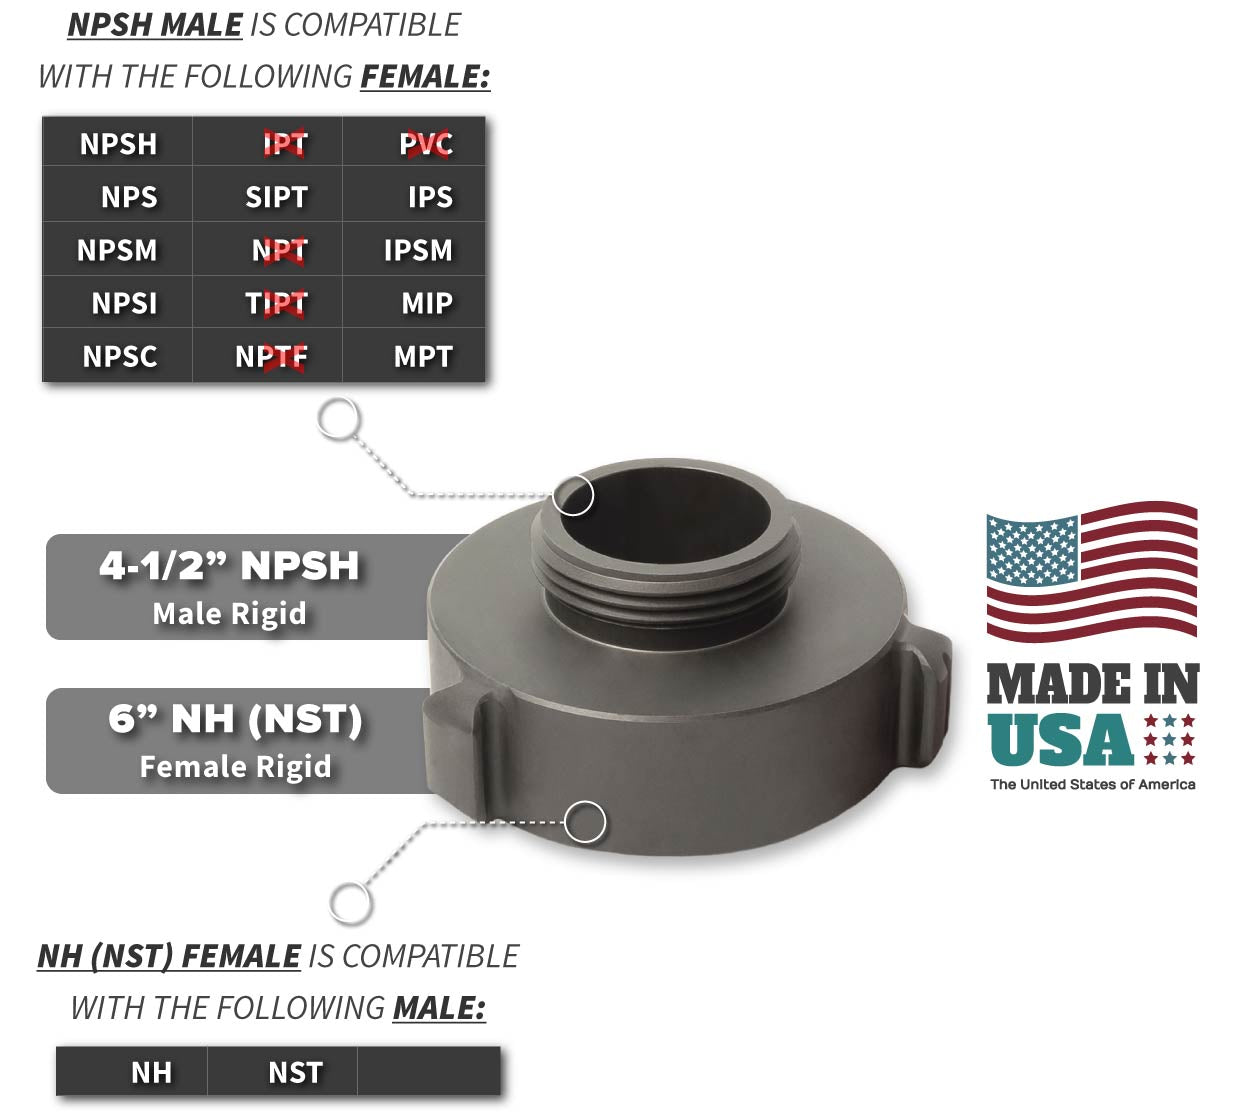 6 Inch NH-NST Female x 4.5 Inch NPSH Male Compatibility Thread Chart